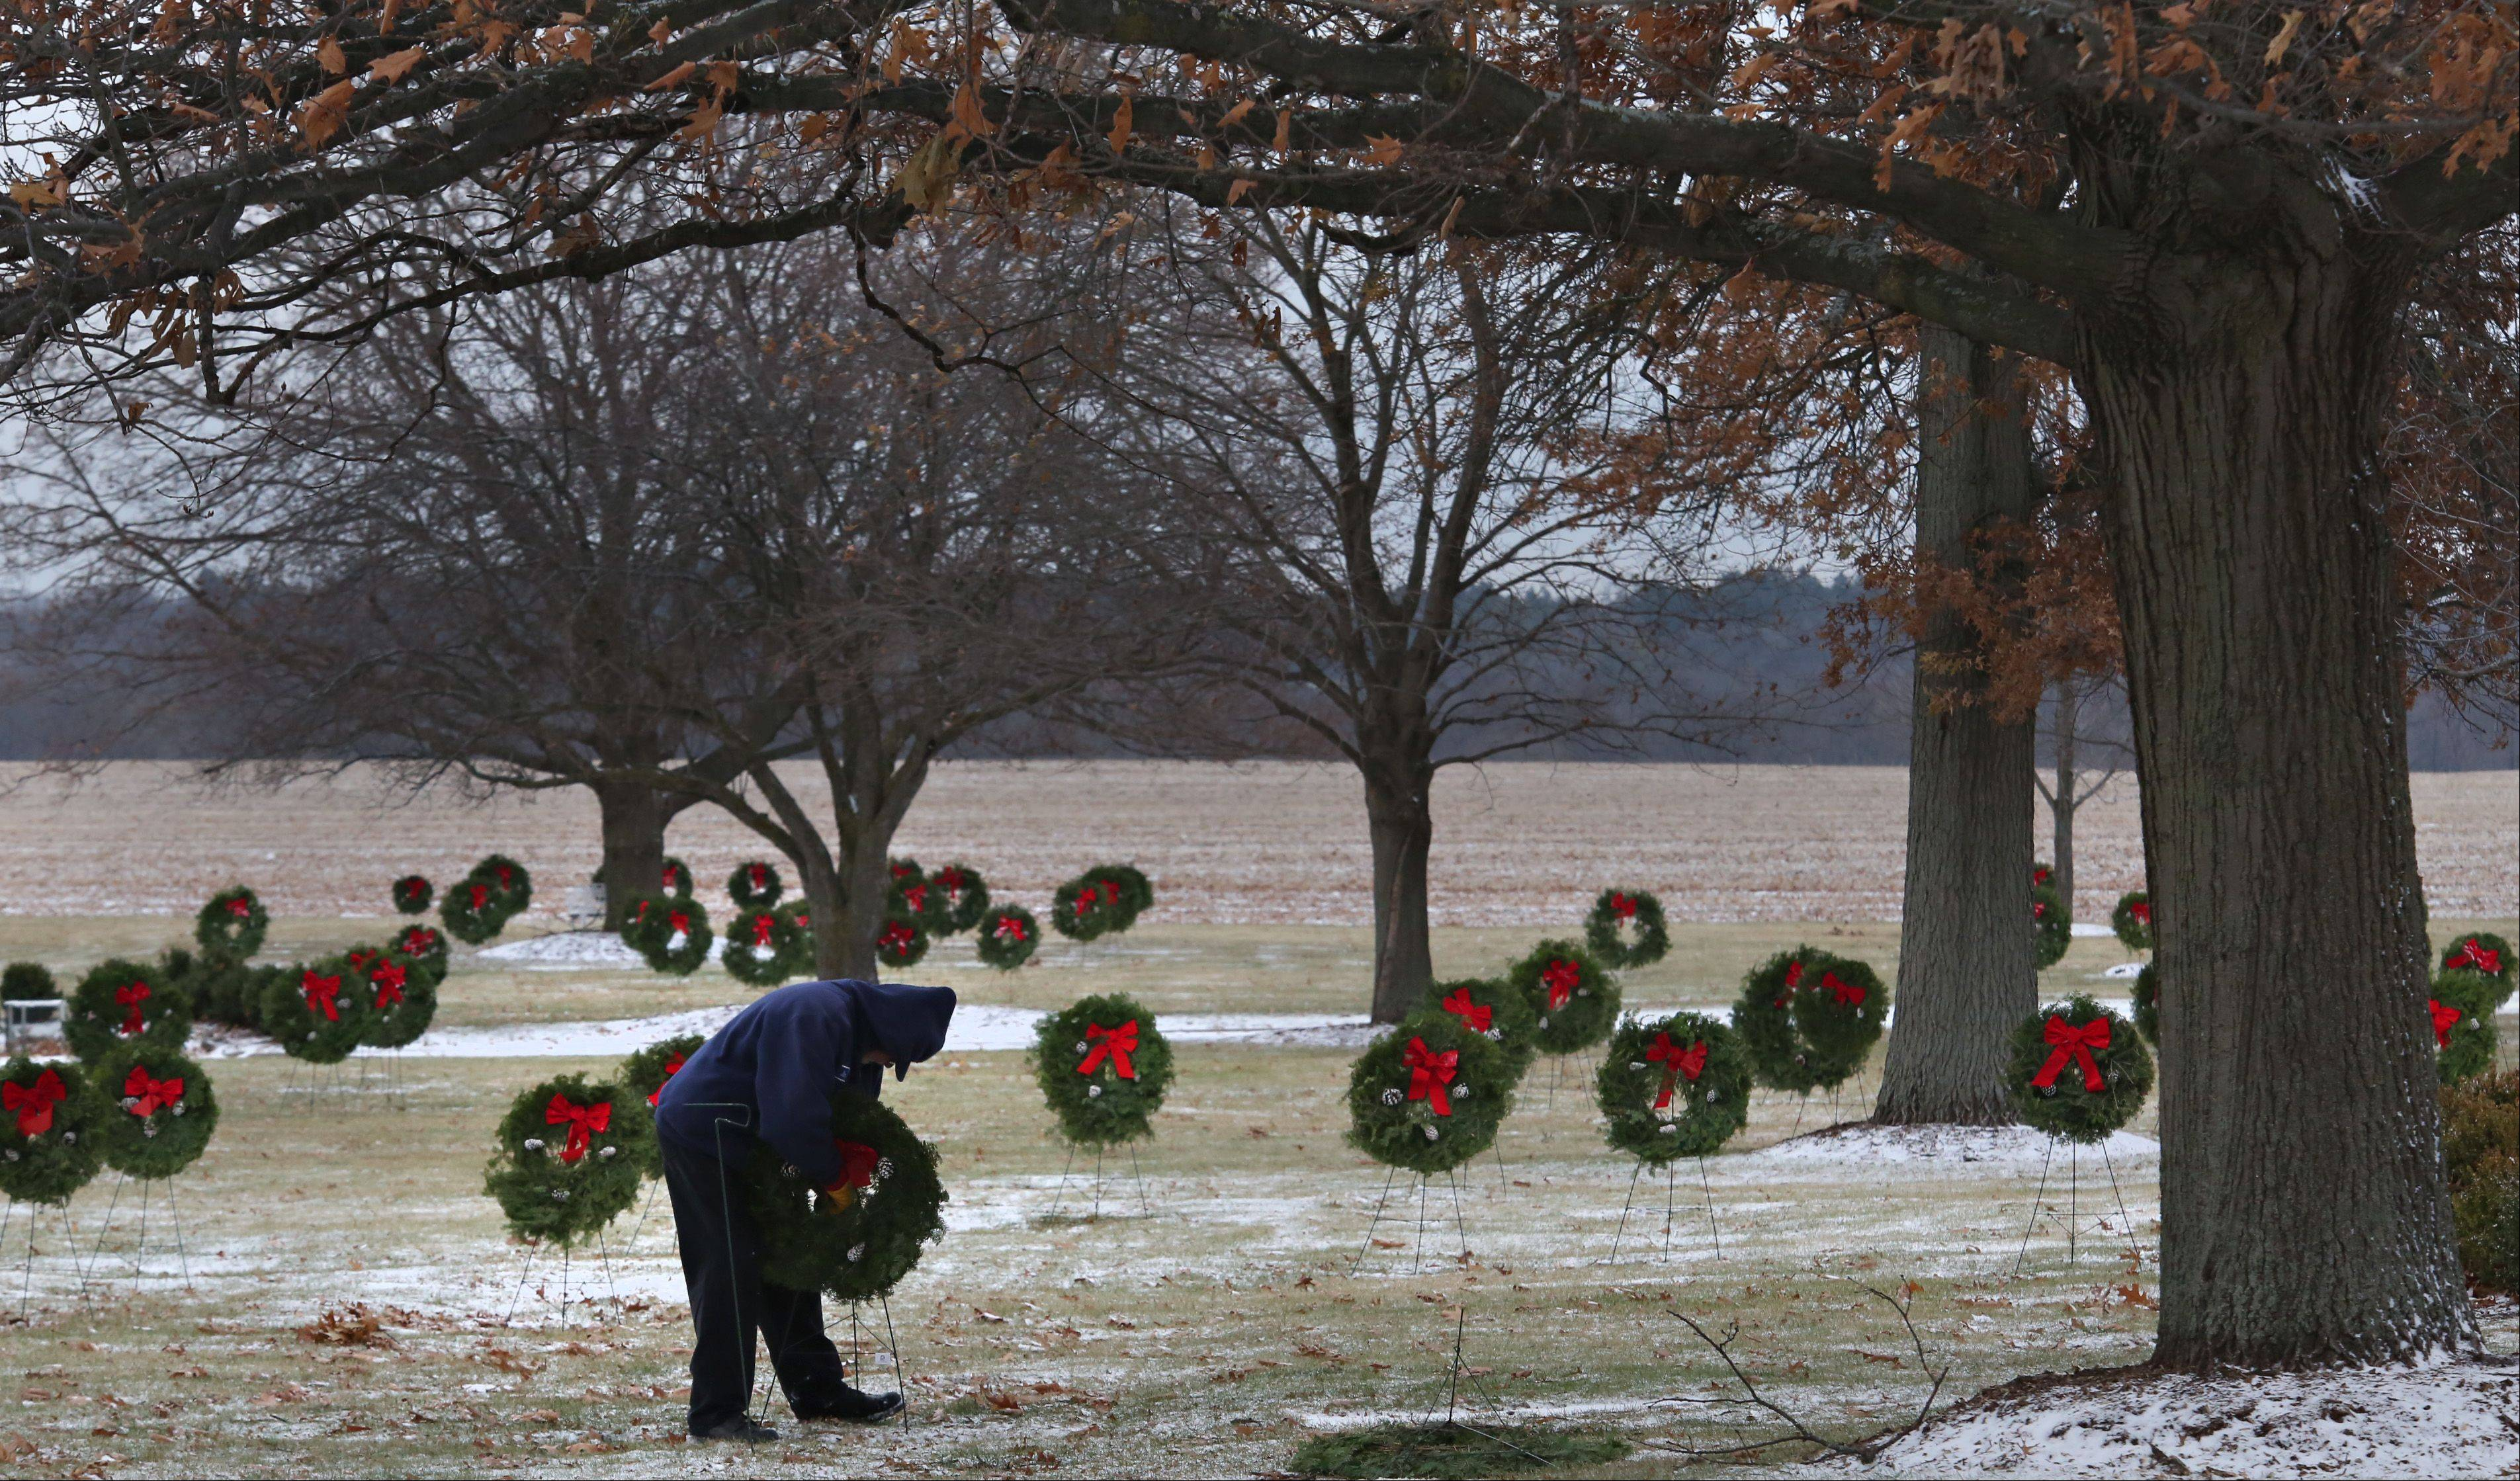 Jim Erboe, a part-time employee at River Valley Memorial Gardens in West Dundee, places Christmas wreaths on the graves of veterans buried at the picturesque cemetery.